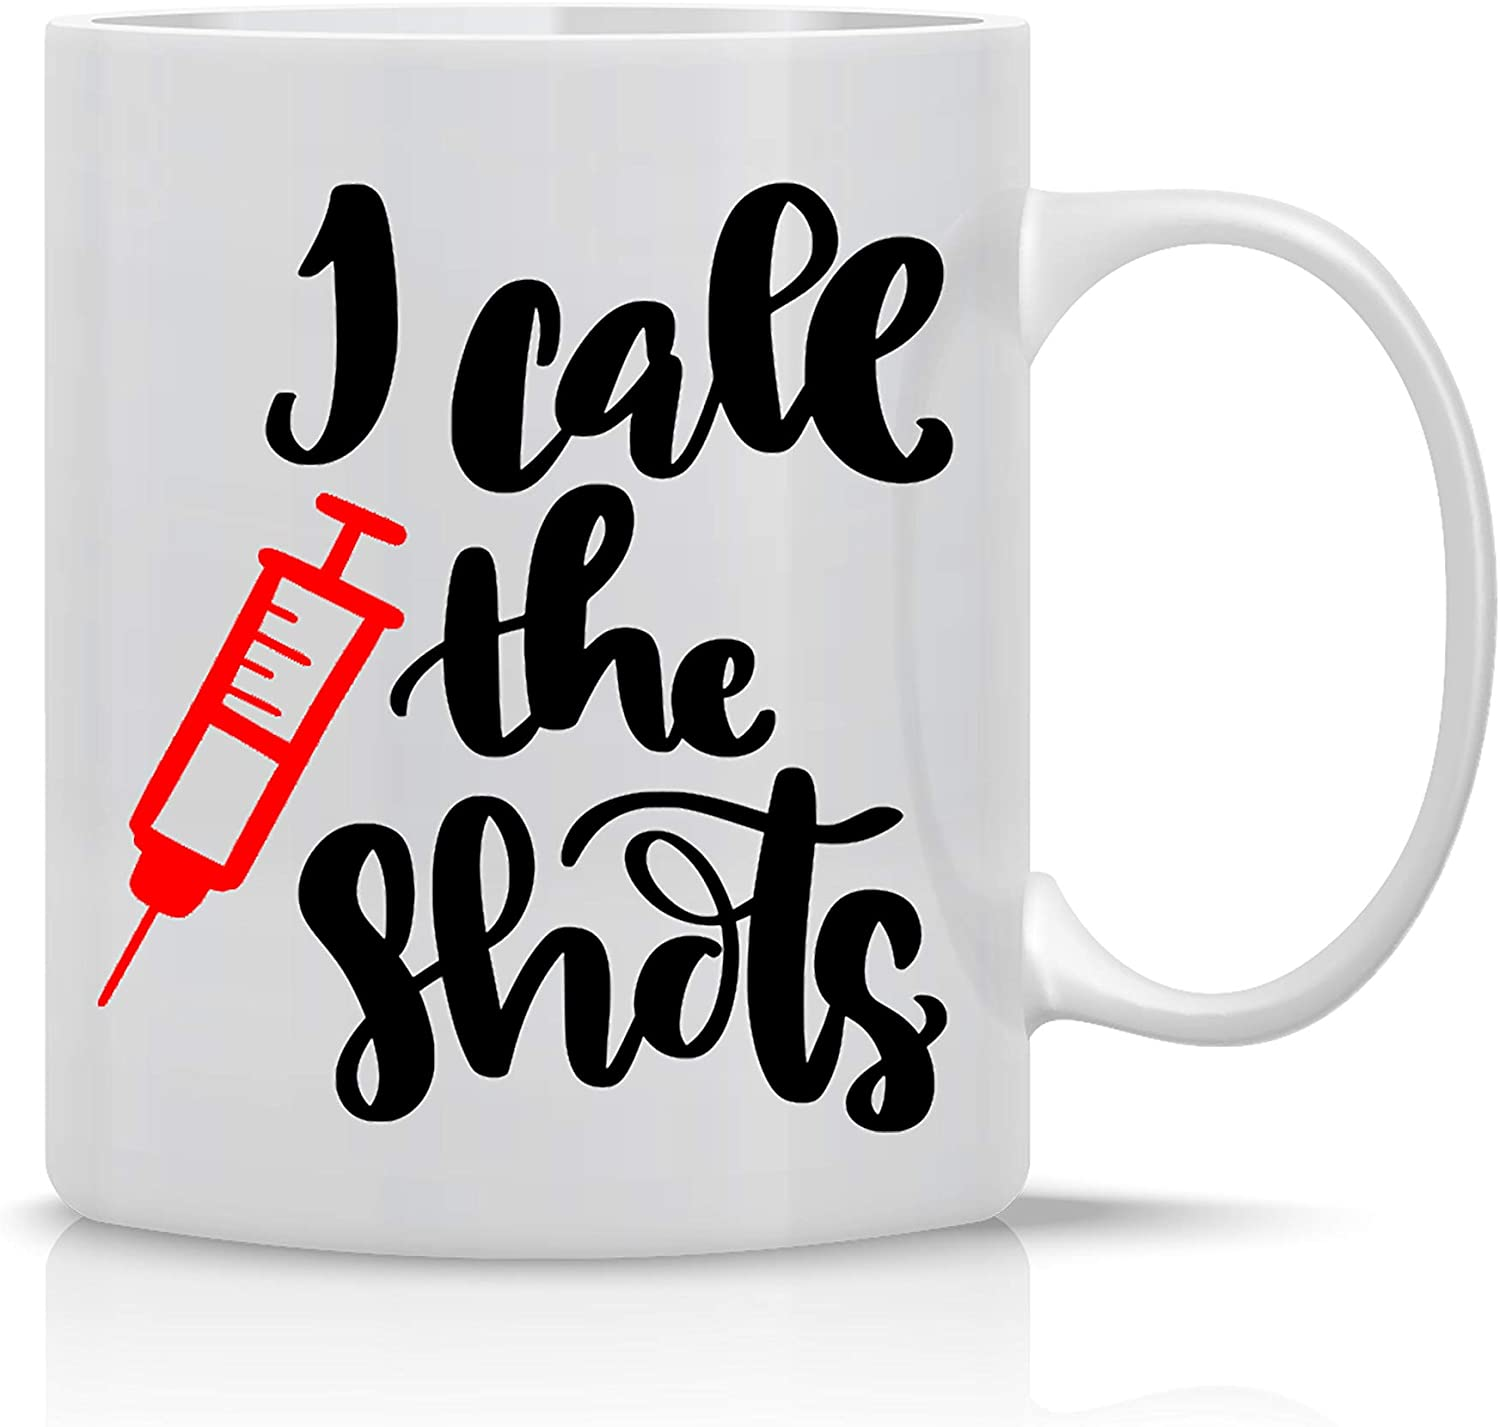 """Image of a white mug with the print """"I call the shots"""" and a drawing of a syringe beside it."""